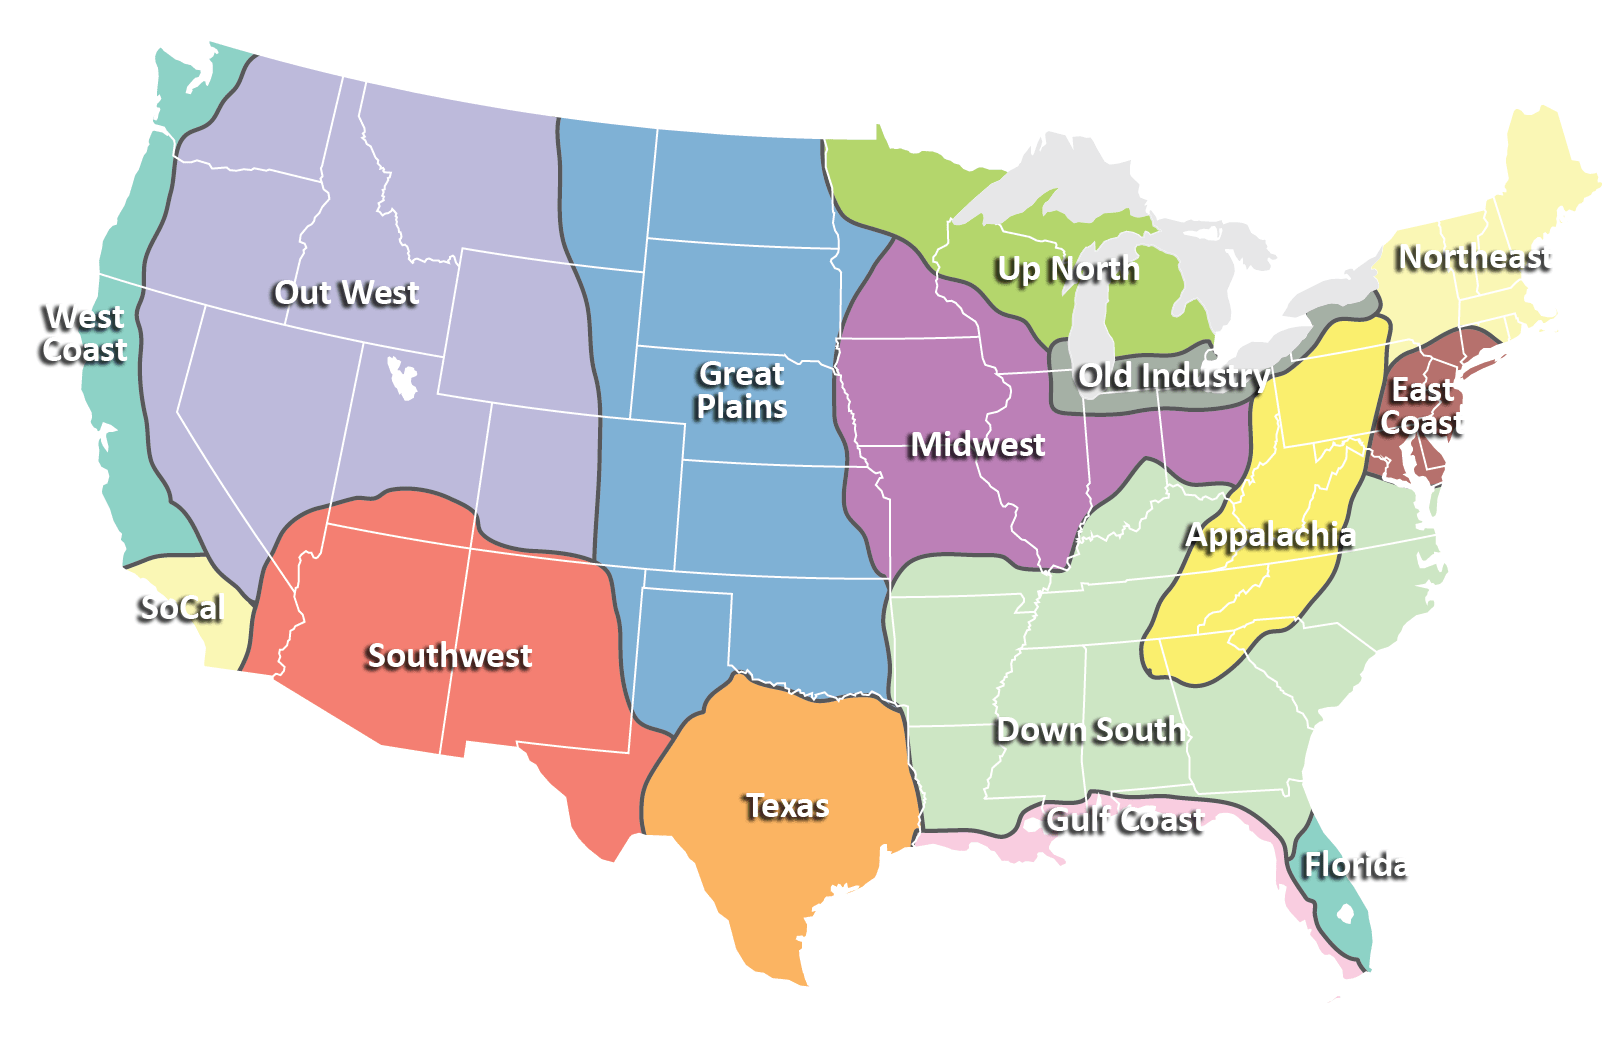 Regions Of The Continental United States According To Me